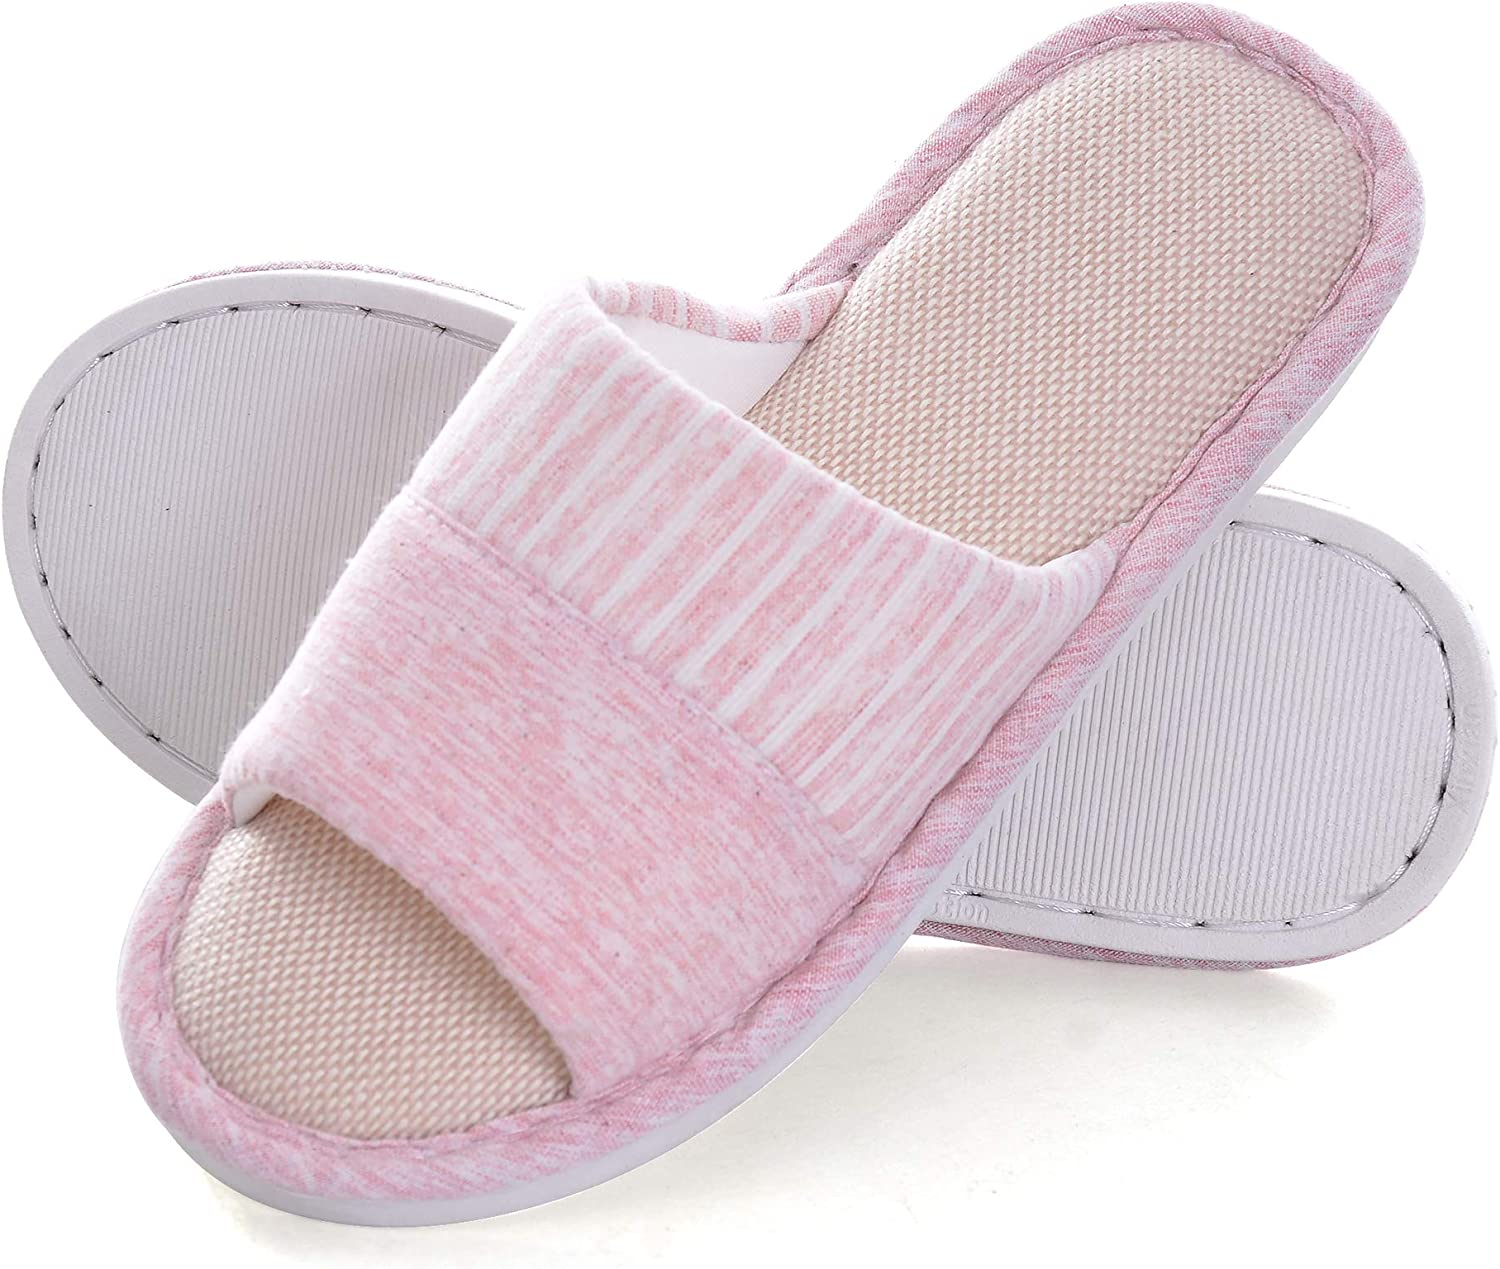 Dear Time House Slippers for Women Plaid Open Toe Bedroom Indoor Slippers